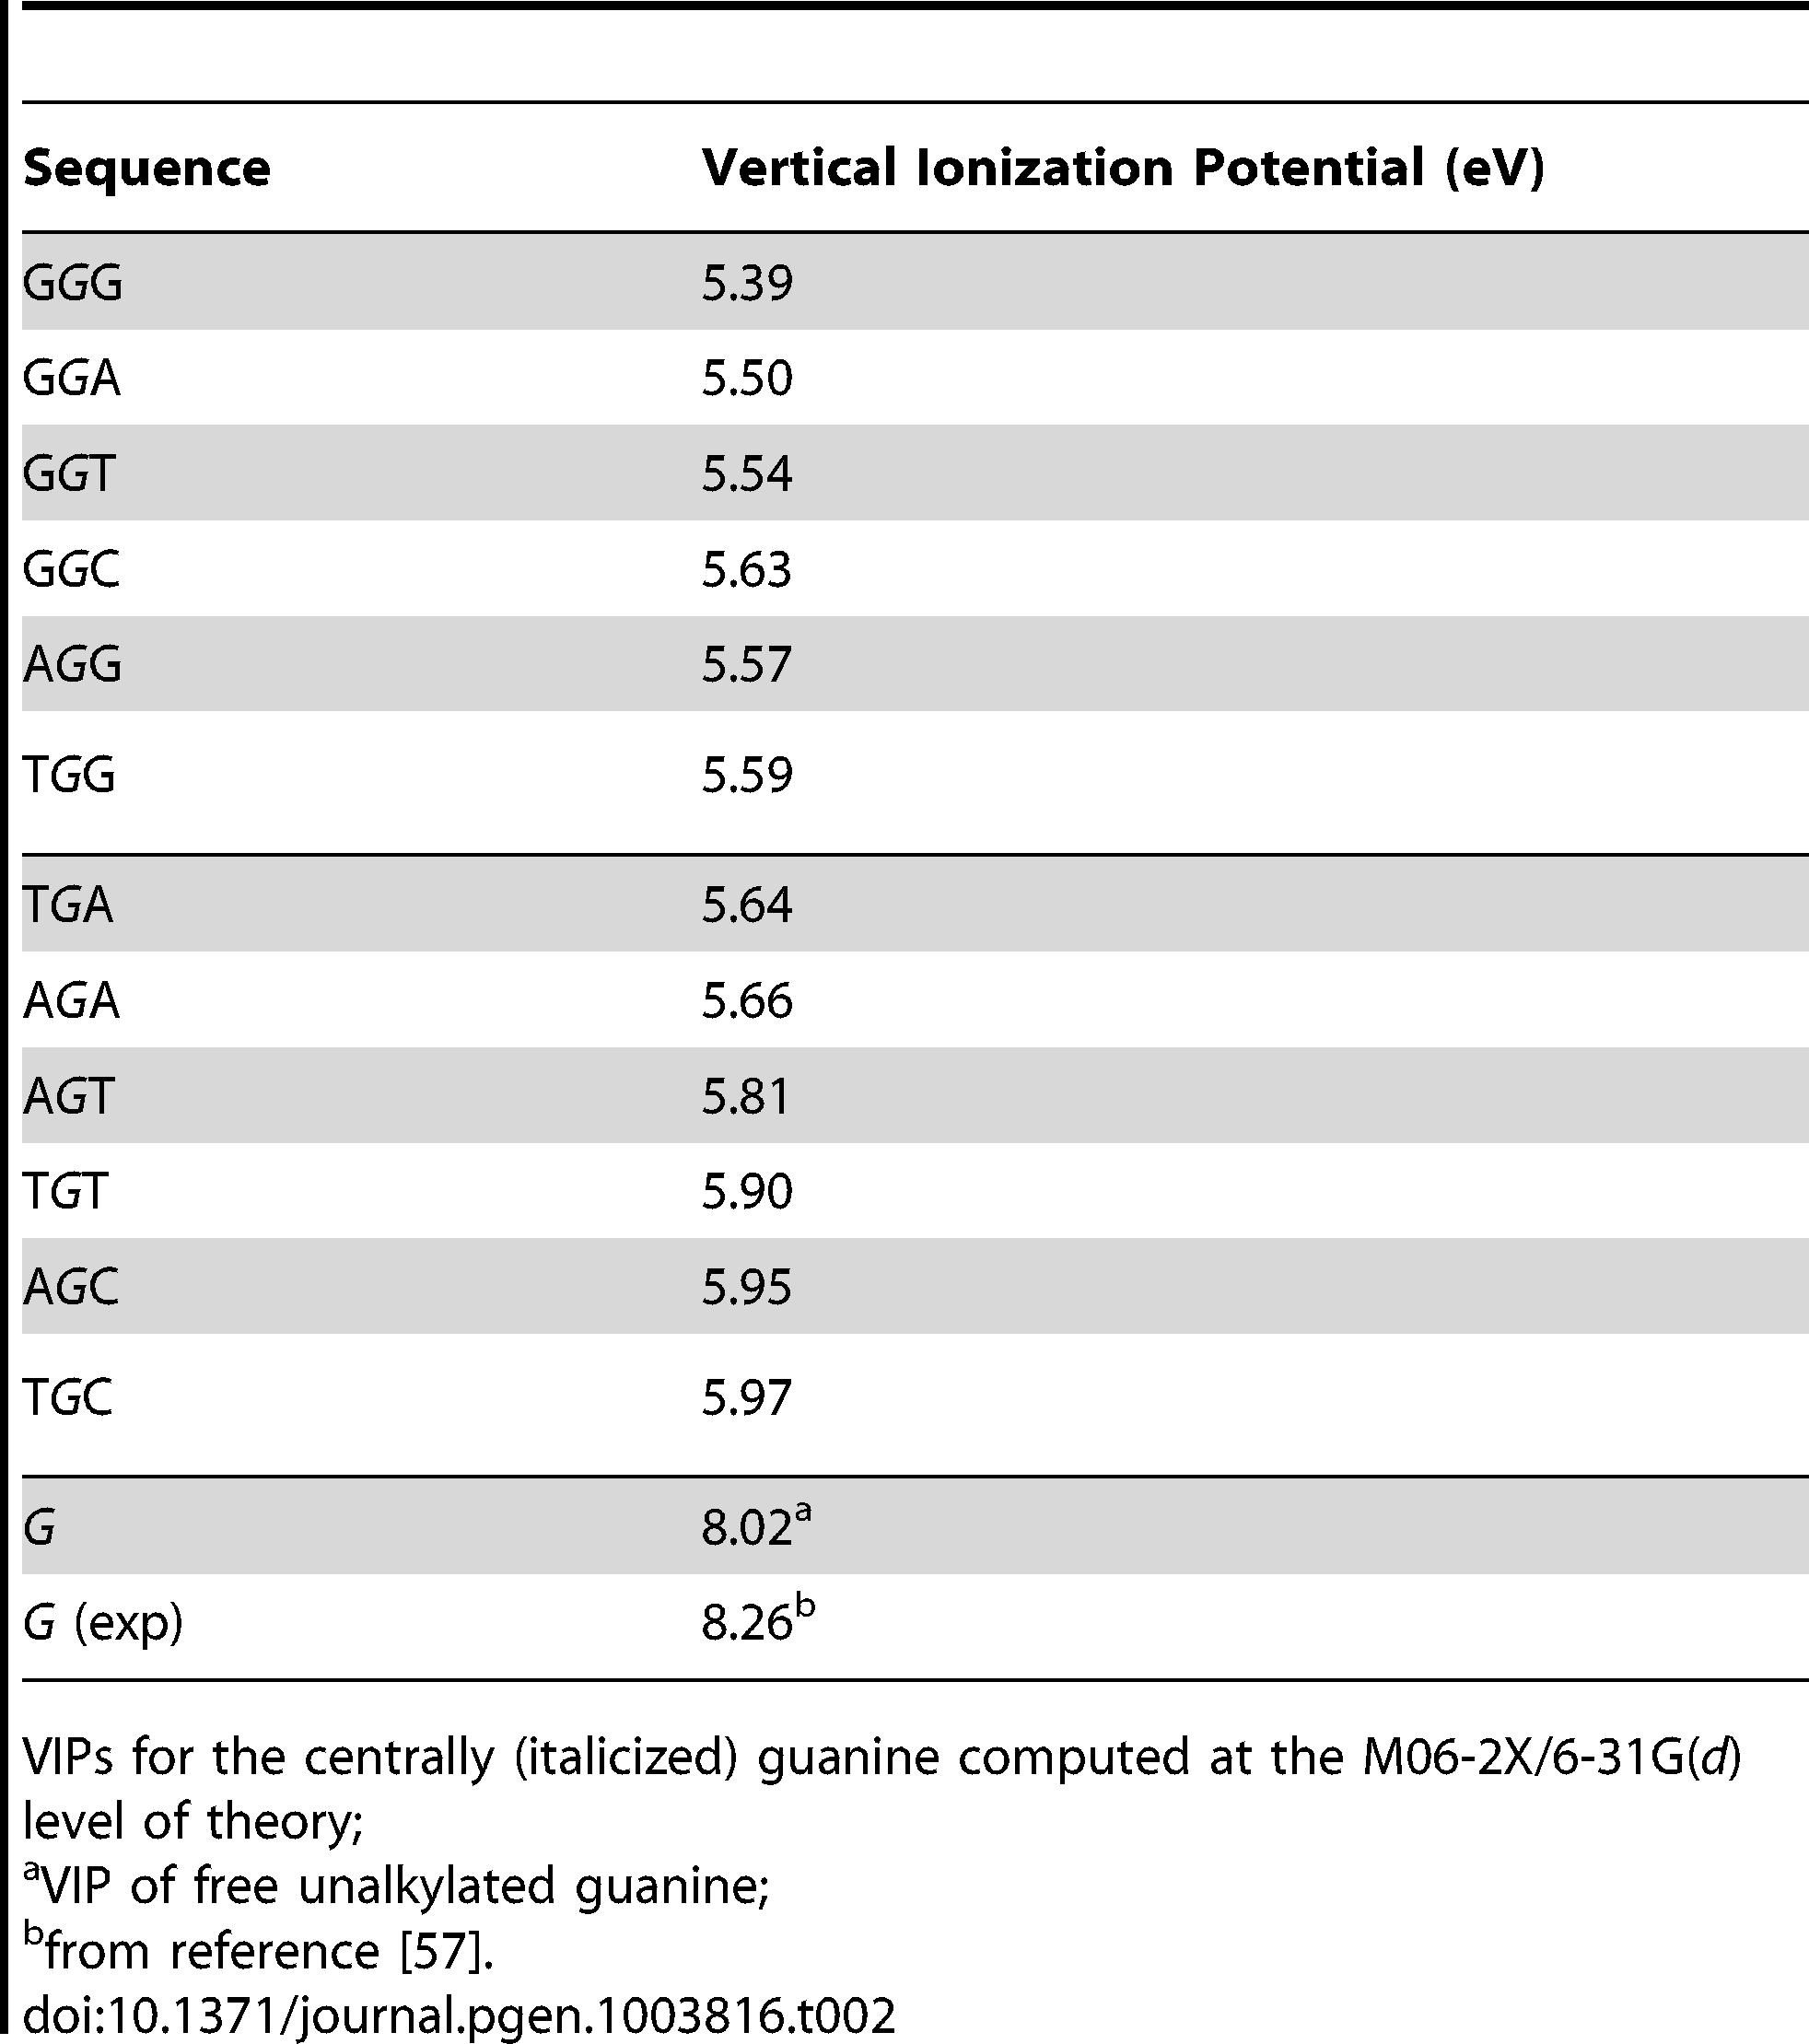 Vertical ionization potentials (VIPs) of guanine-centered DGN sequences.